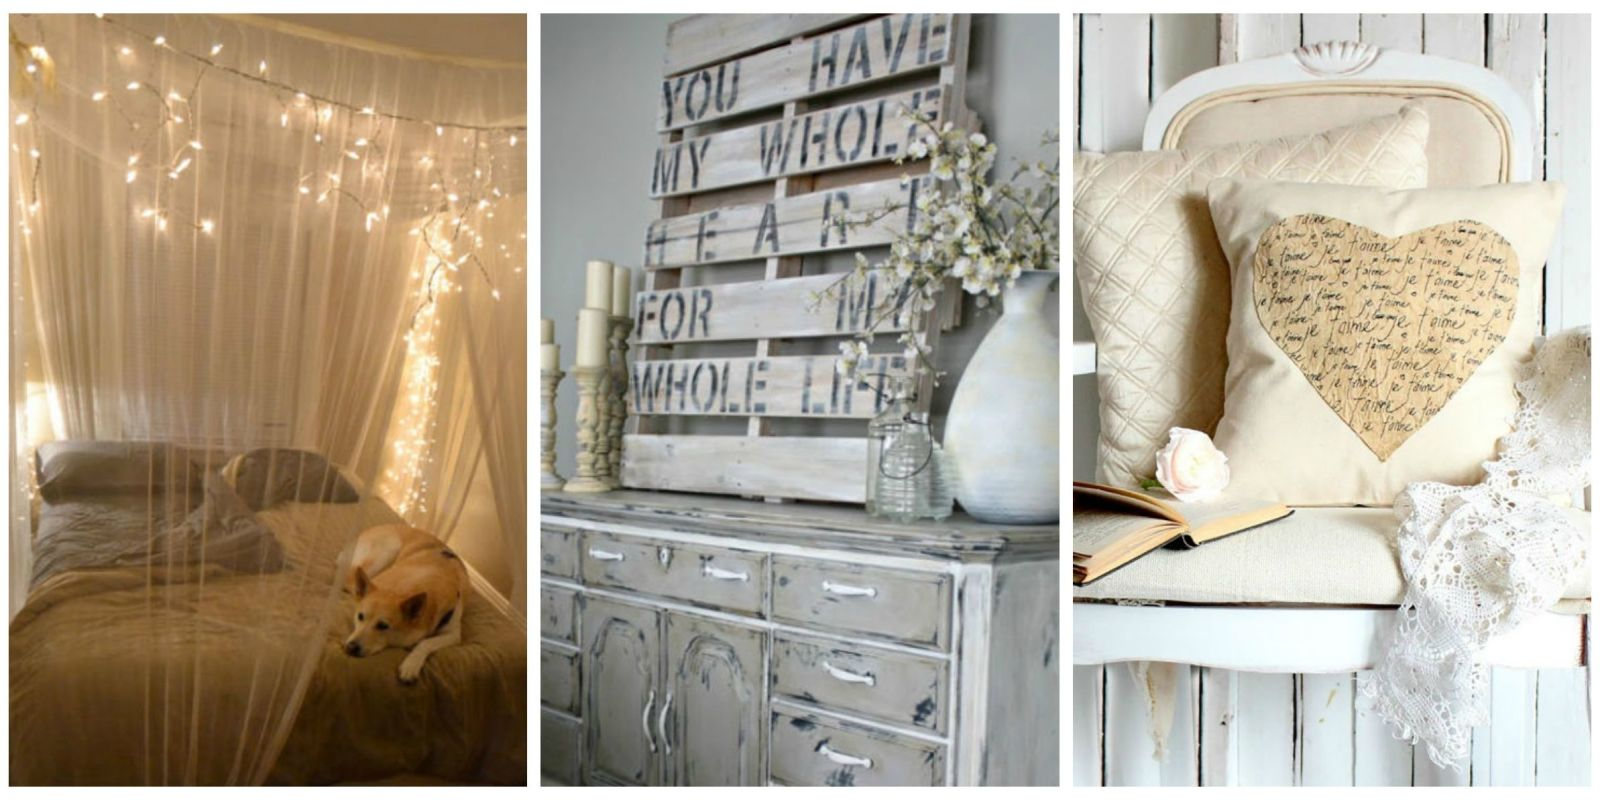 DIY Romantic Bedroom Decorating Ideas - Country Living